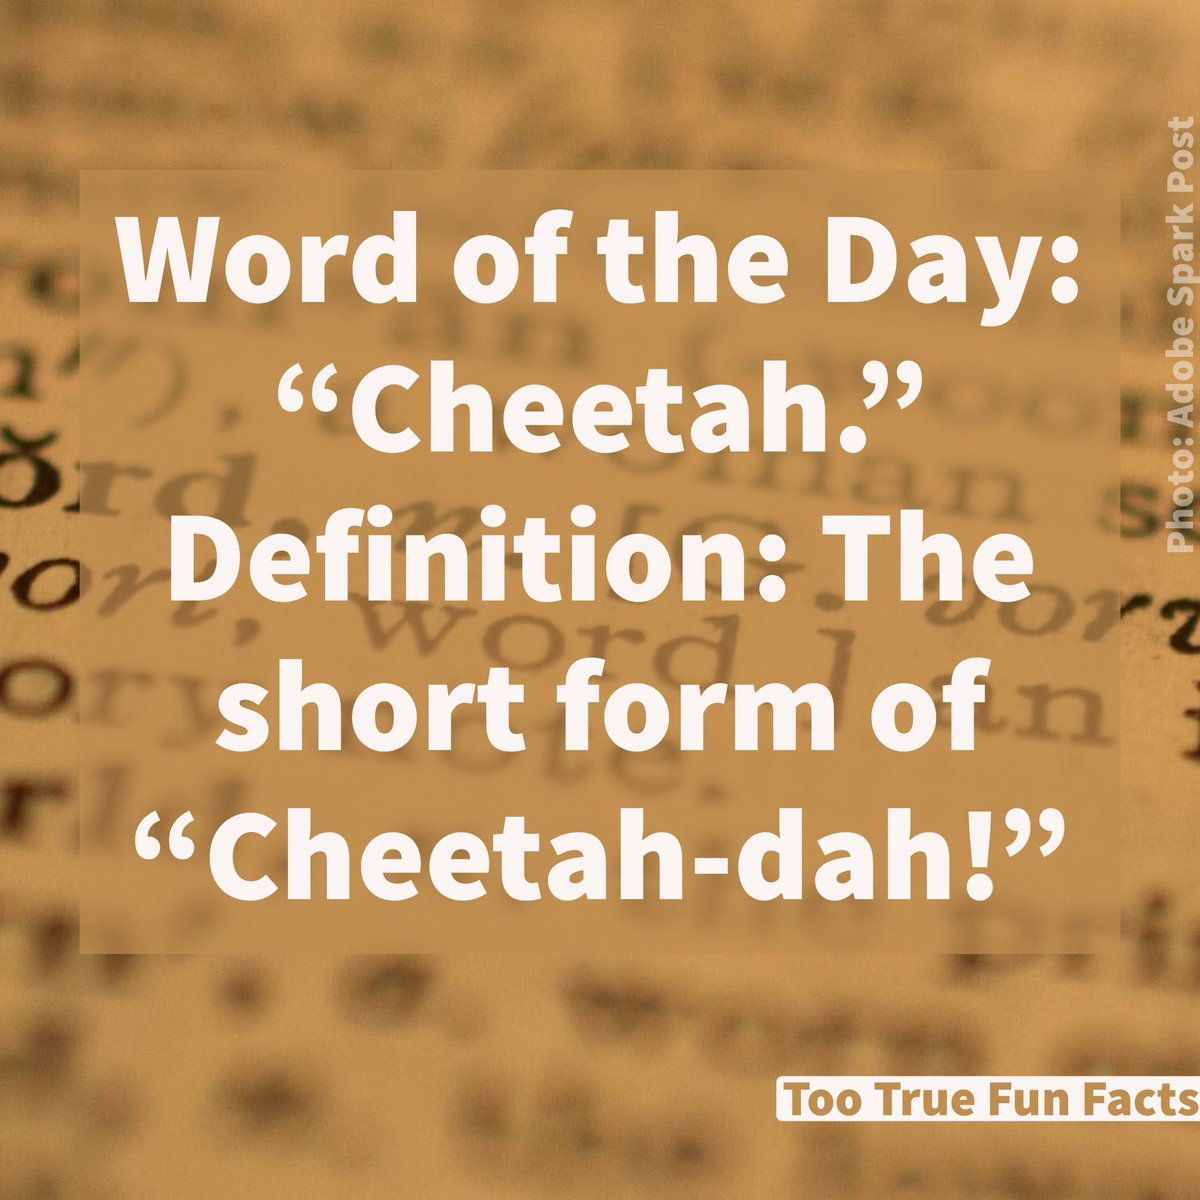 Too True Fun Facts On Twitter Word Of The Day Word Words